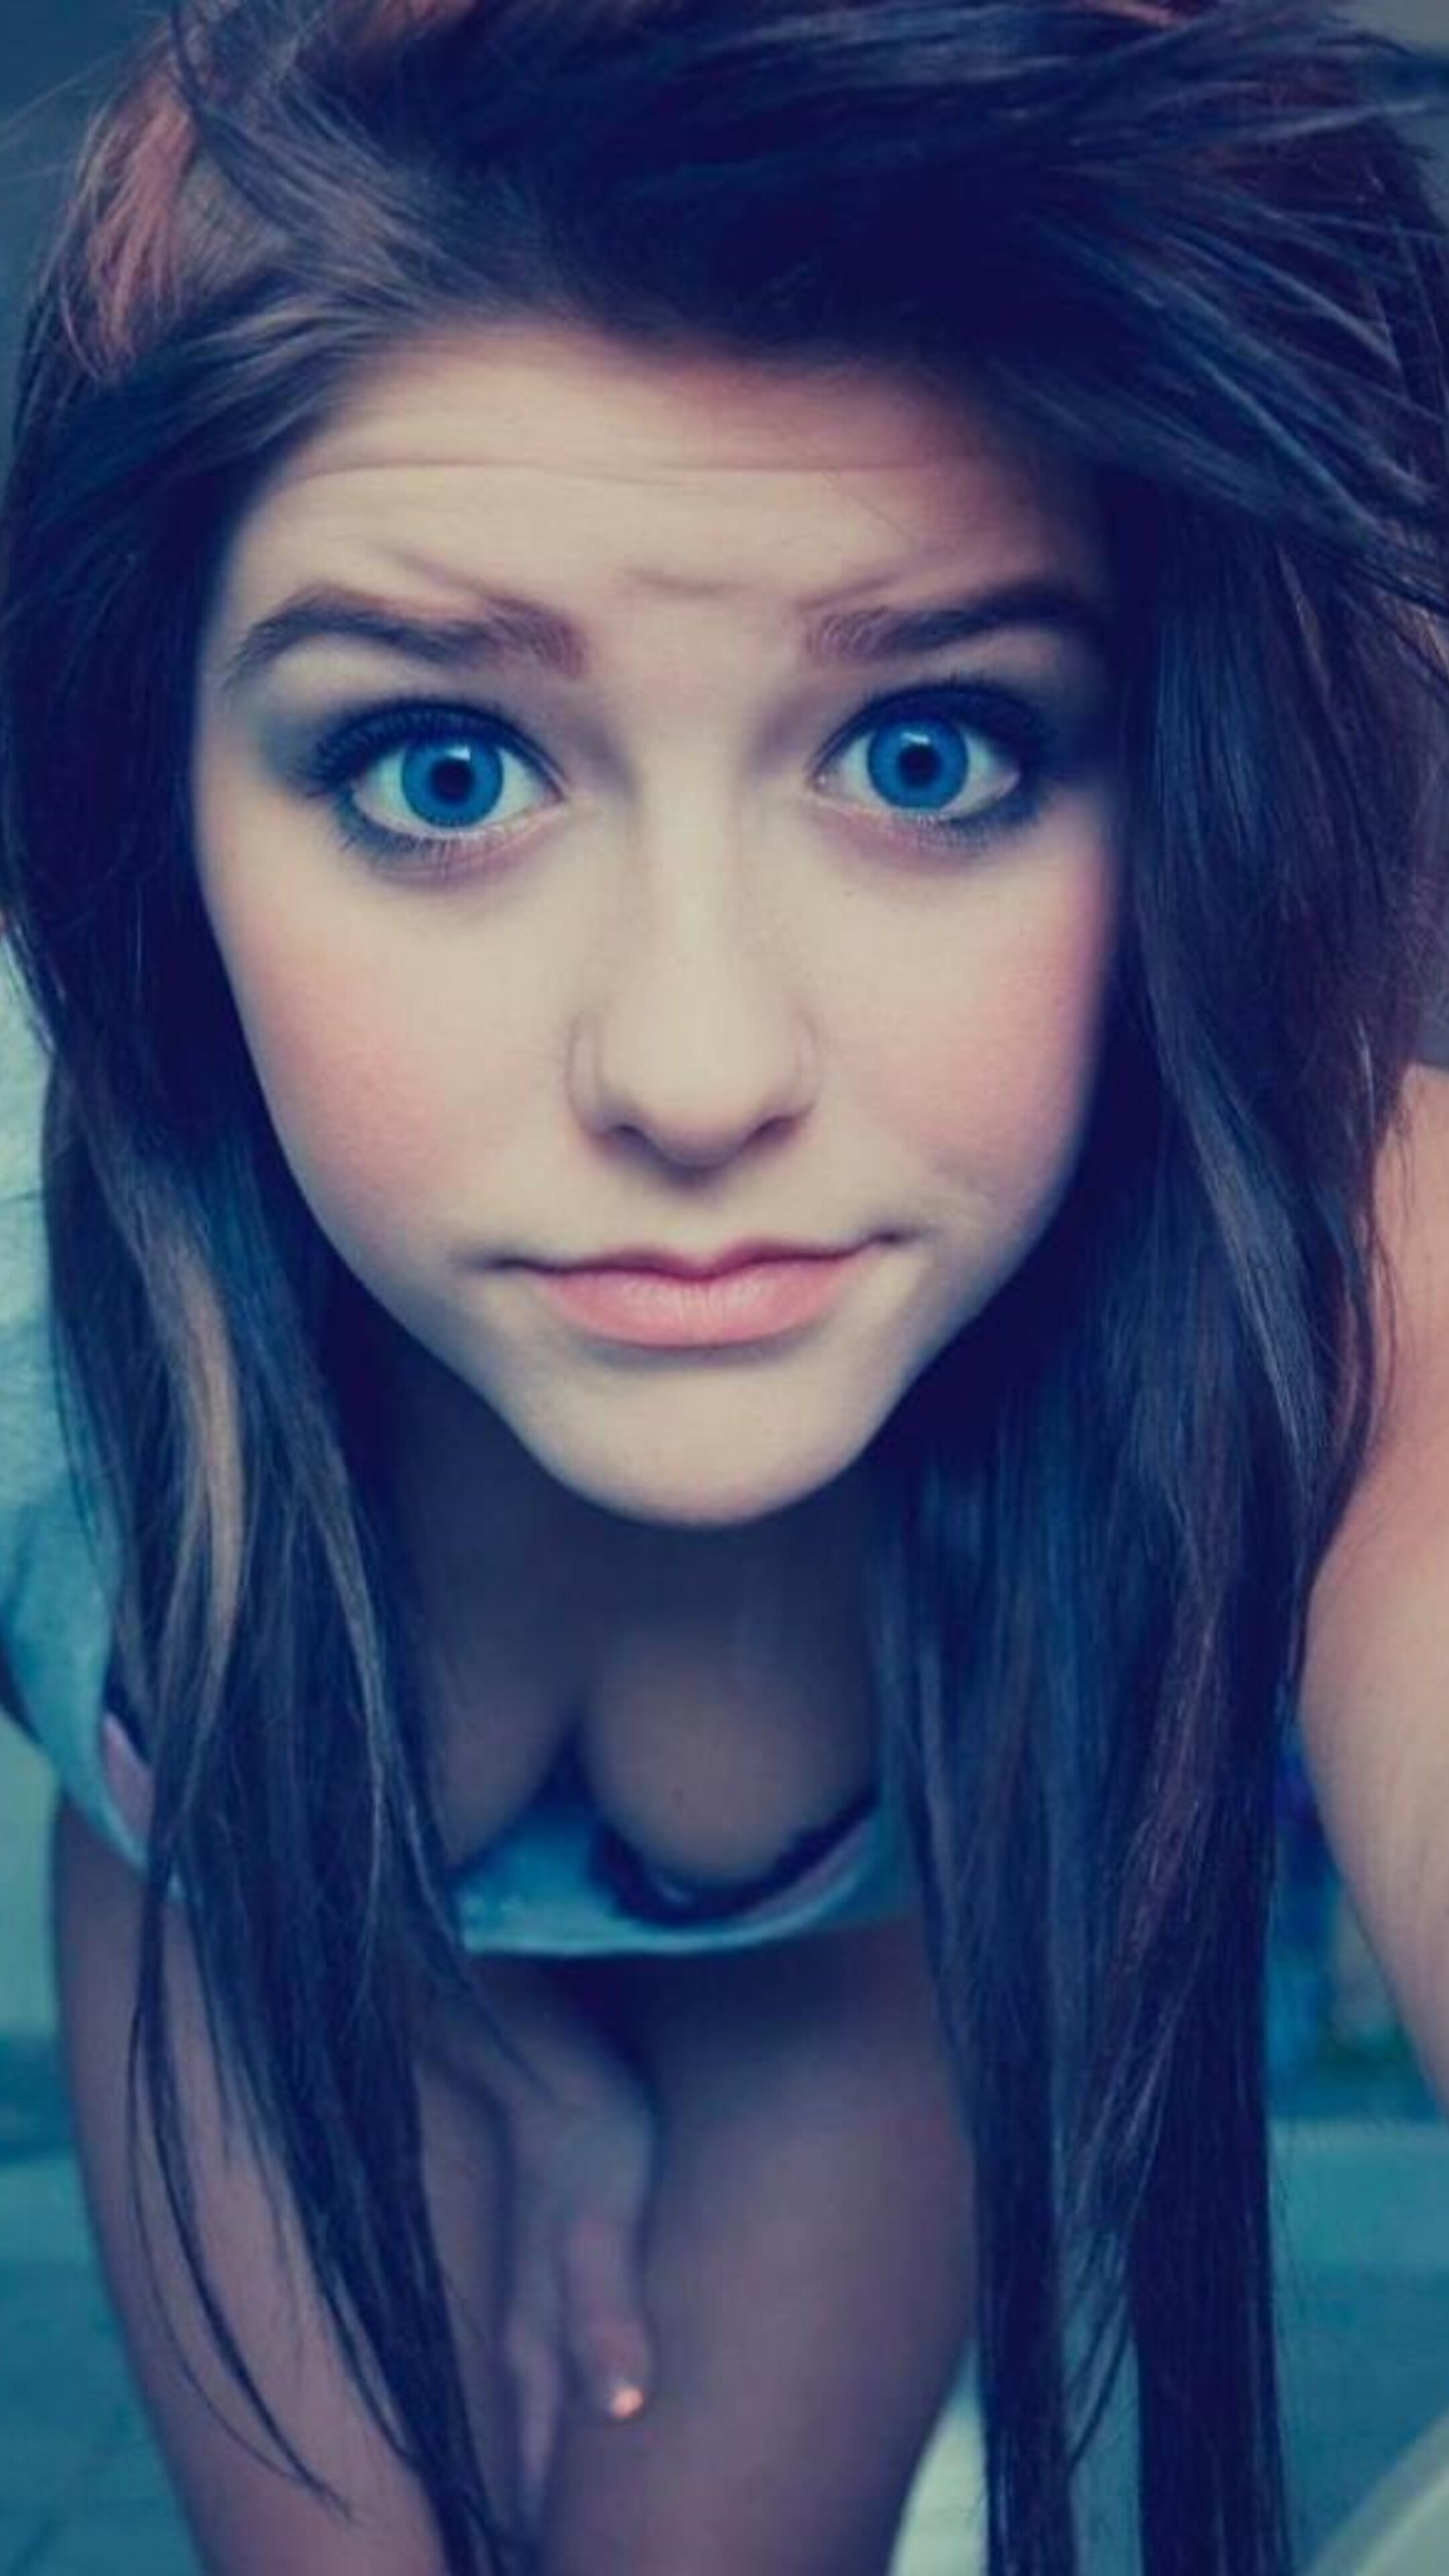 2160x3840 Blue Eyes Cute Teen Girl Sony Xperia X,XZ,Z5